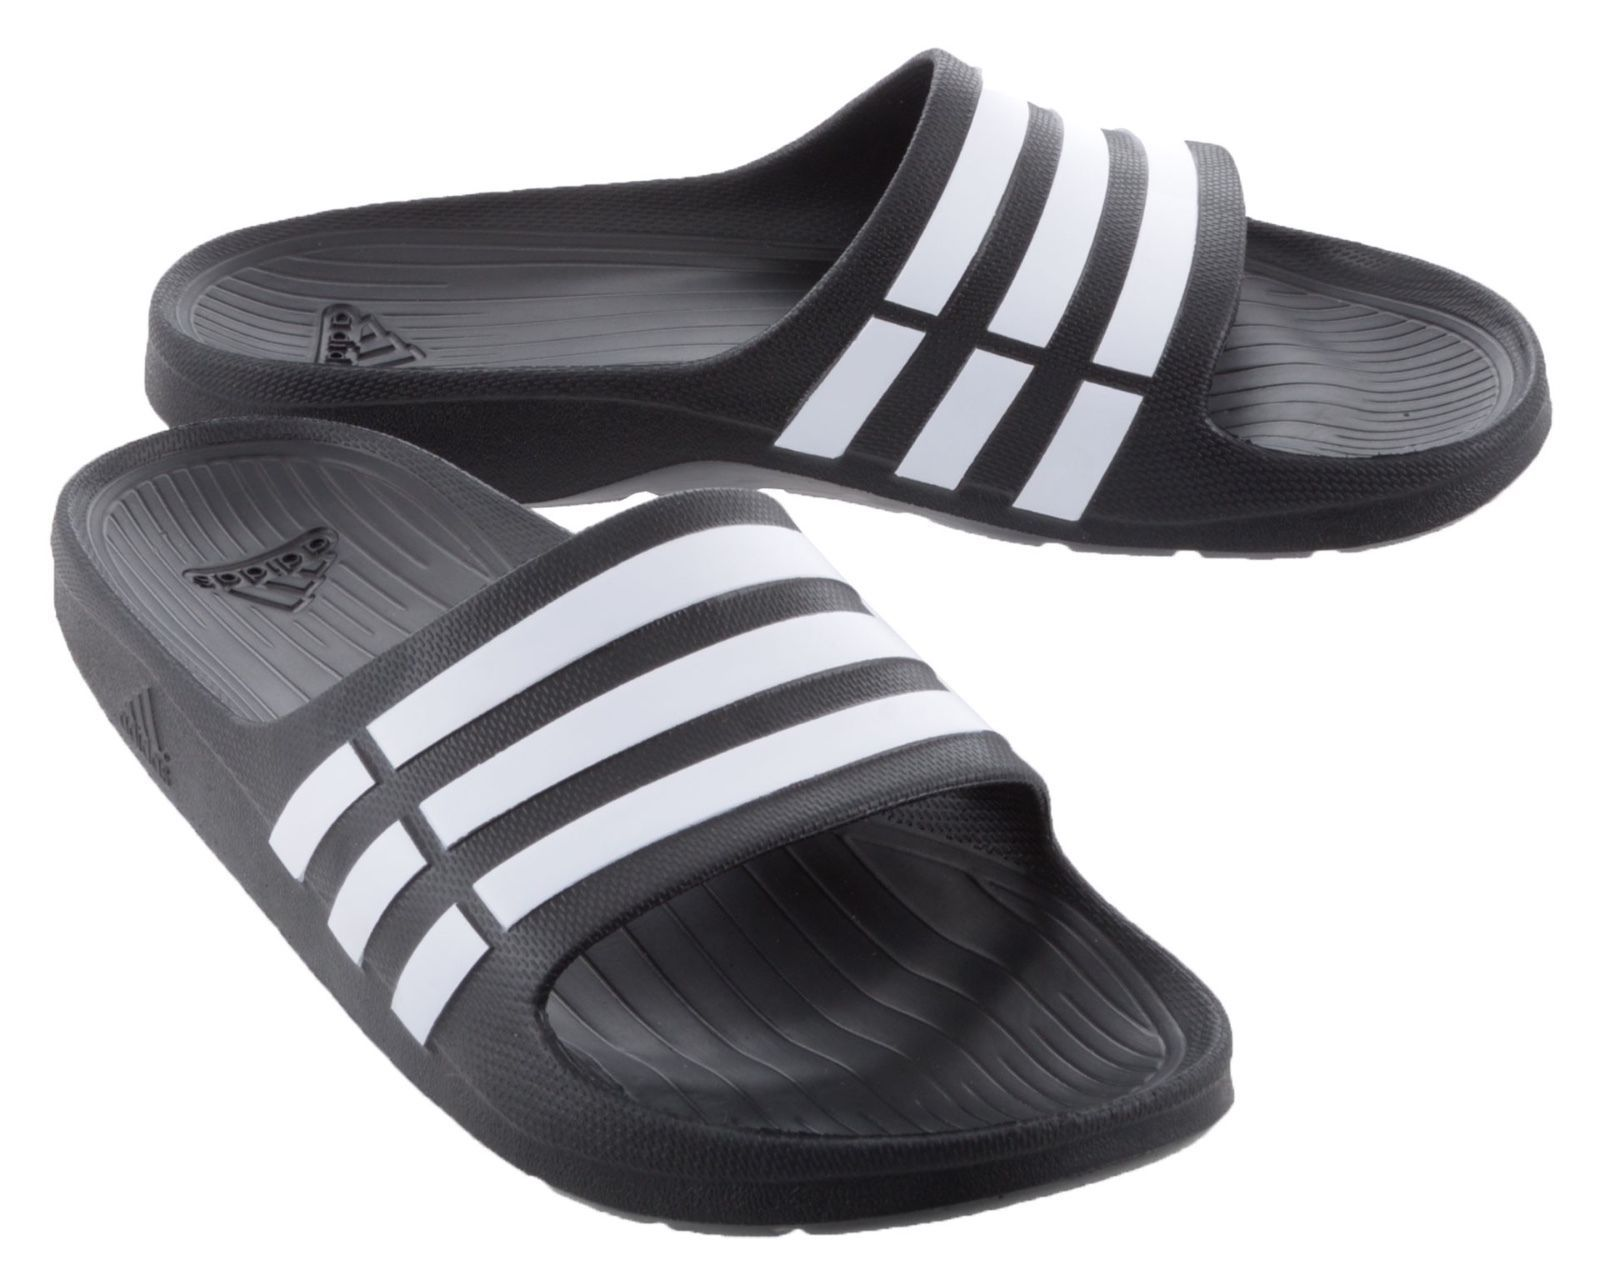 b334b3ba2 ... ADIDAS DURAMO G15890 BLACK WHITE SLIDES SANDALS FLIP FLOPS SHOWER SPORT.  🔍. 1  2